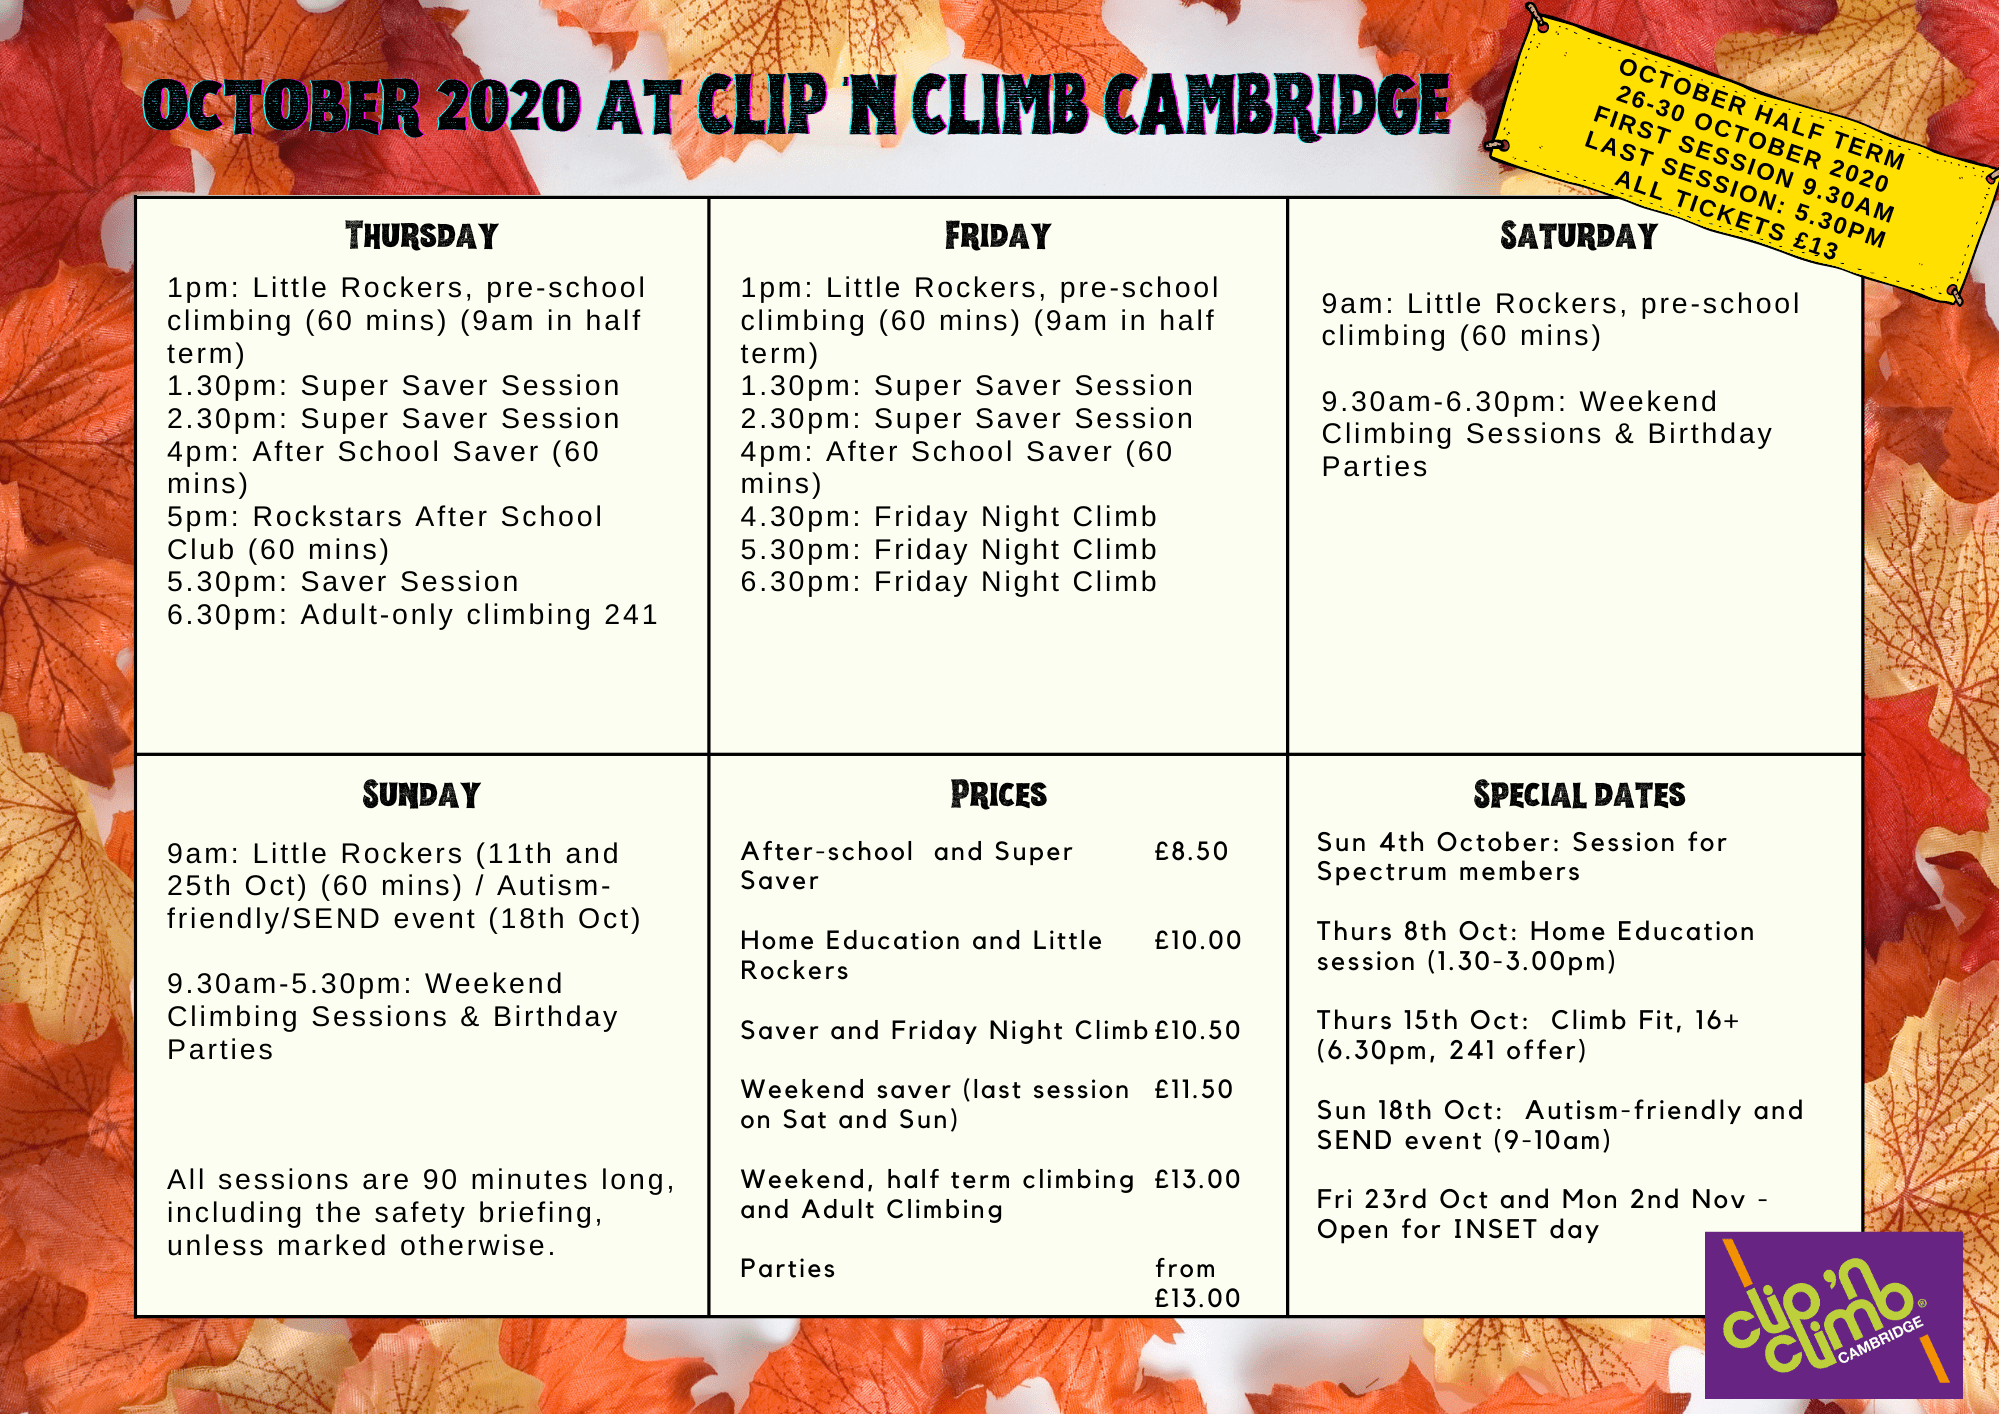 October in Clip 'n Climb Cambridge